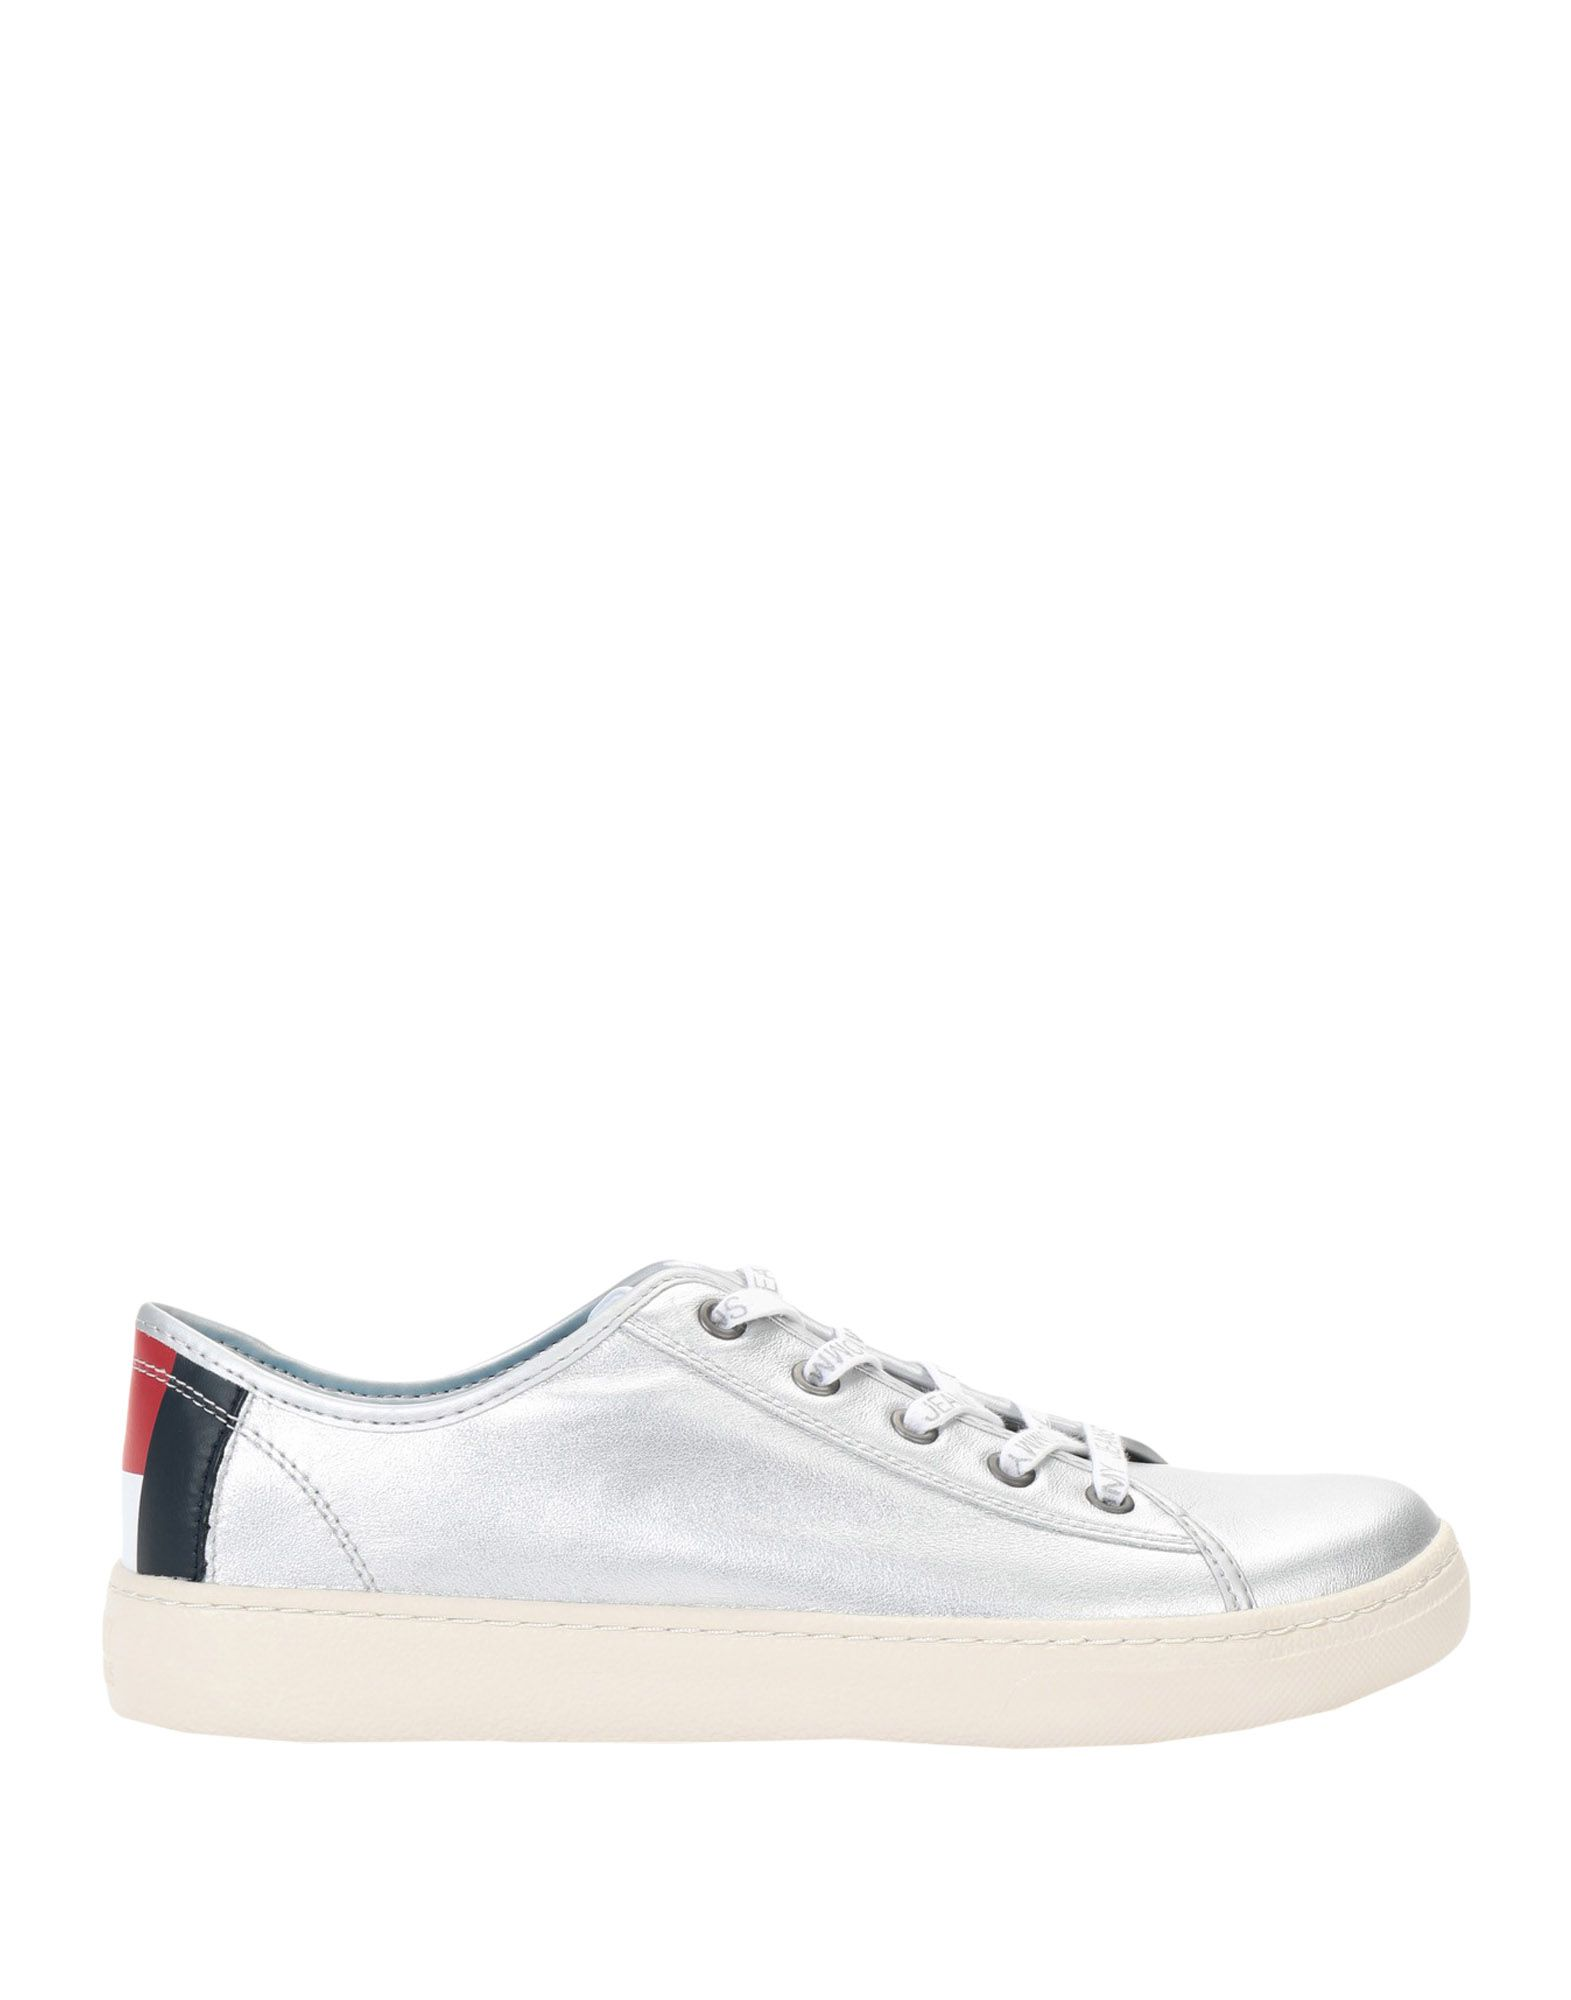 Scarpe da Ginnastica Tommy Jeans Tommy Jeans Light Leather Low - Donna - 11539733HW